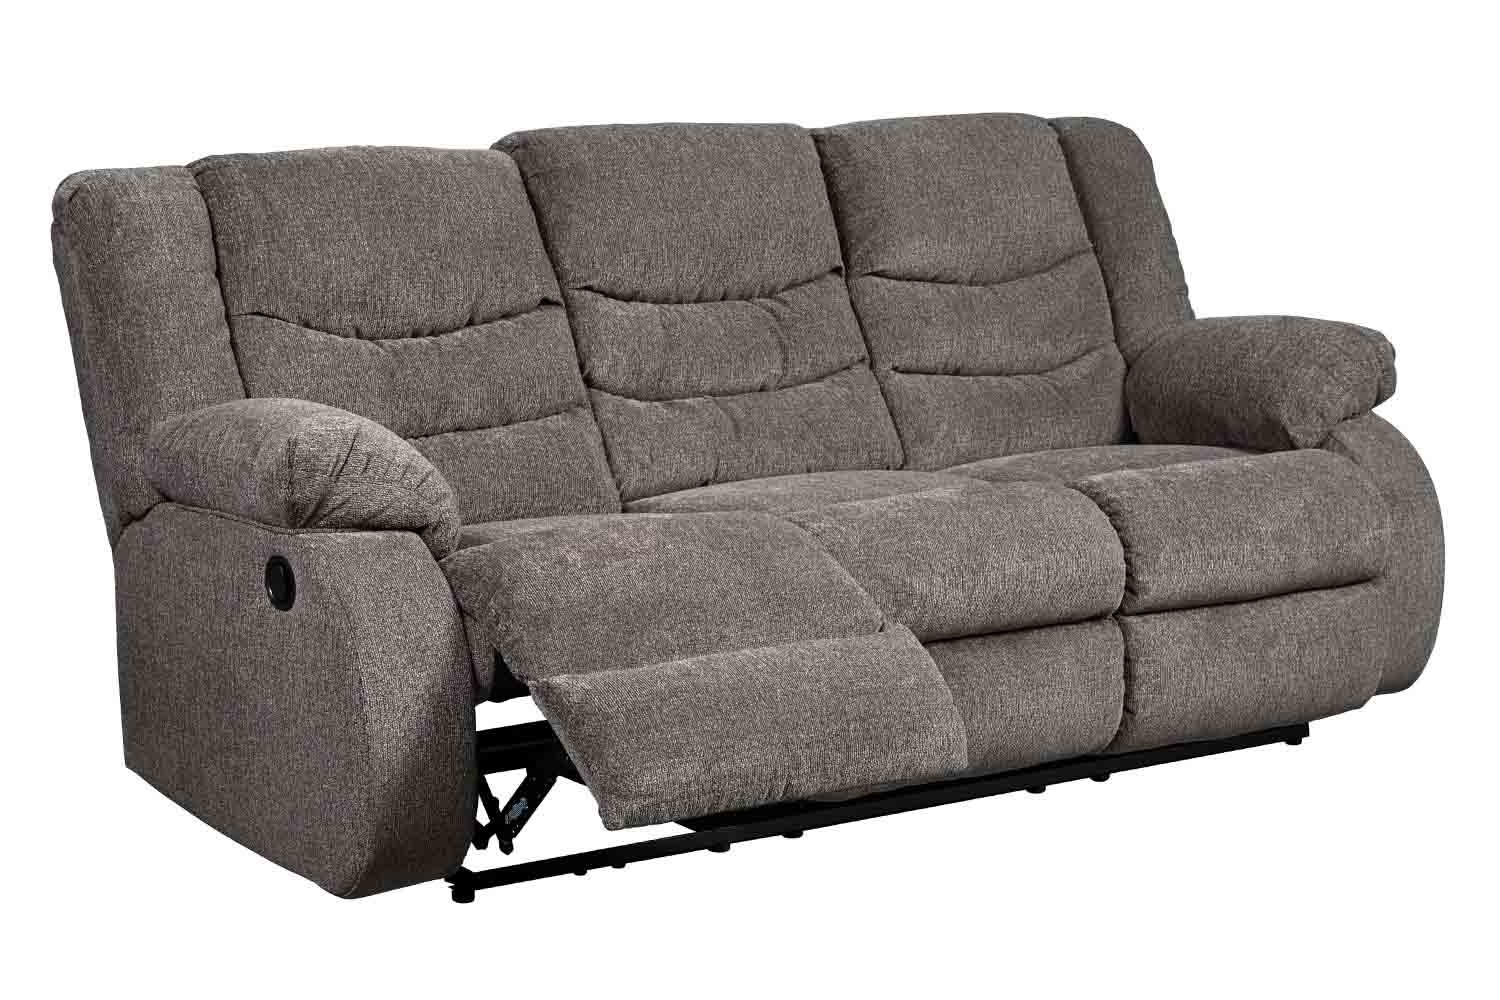 Tulen Slate Reclining Sofa Save Mor Online And In Store